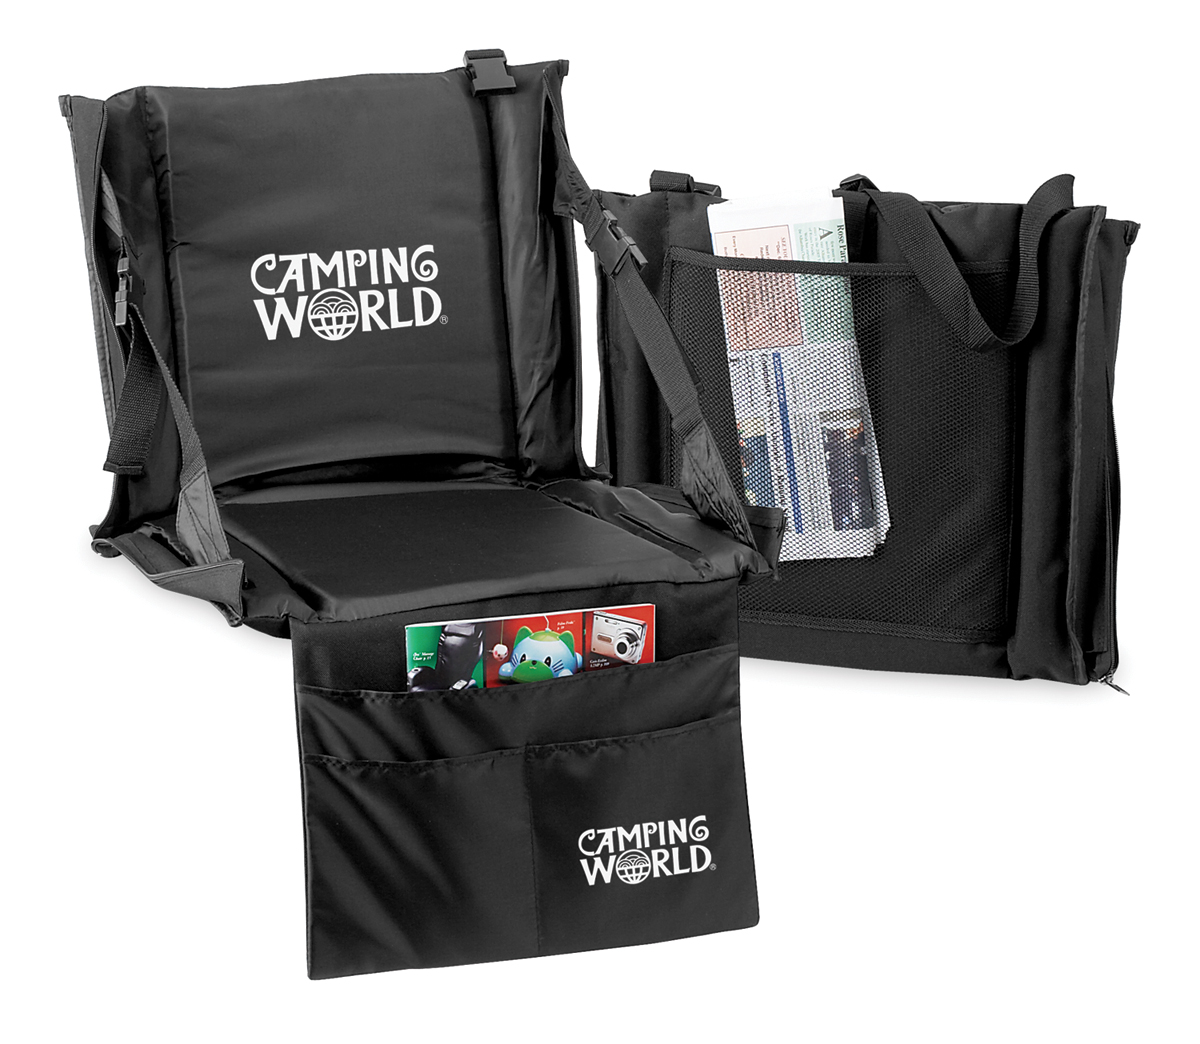 DELUXE STADIUM CUSHION W/ ORGANIZER